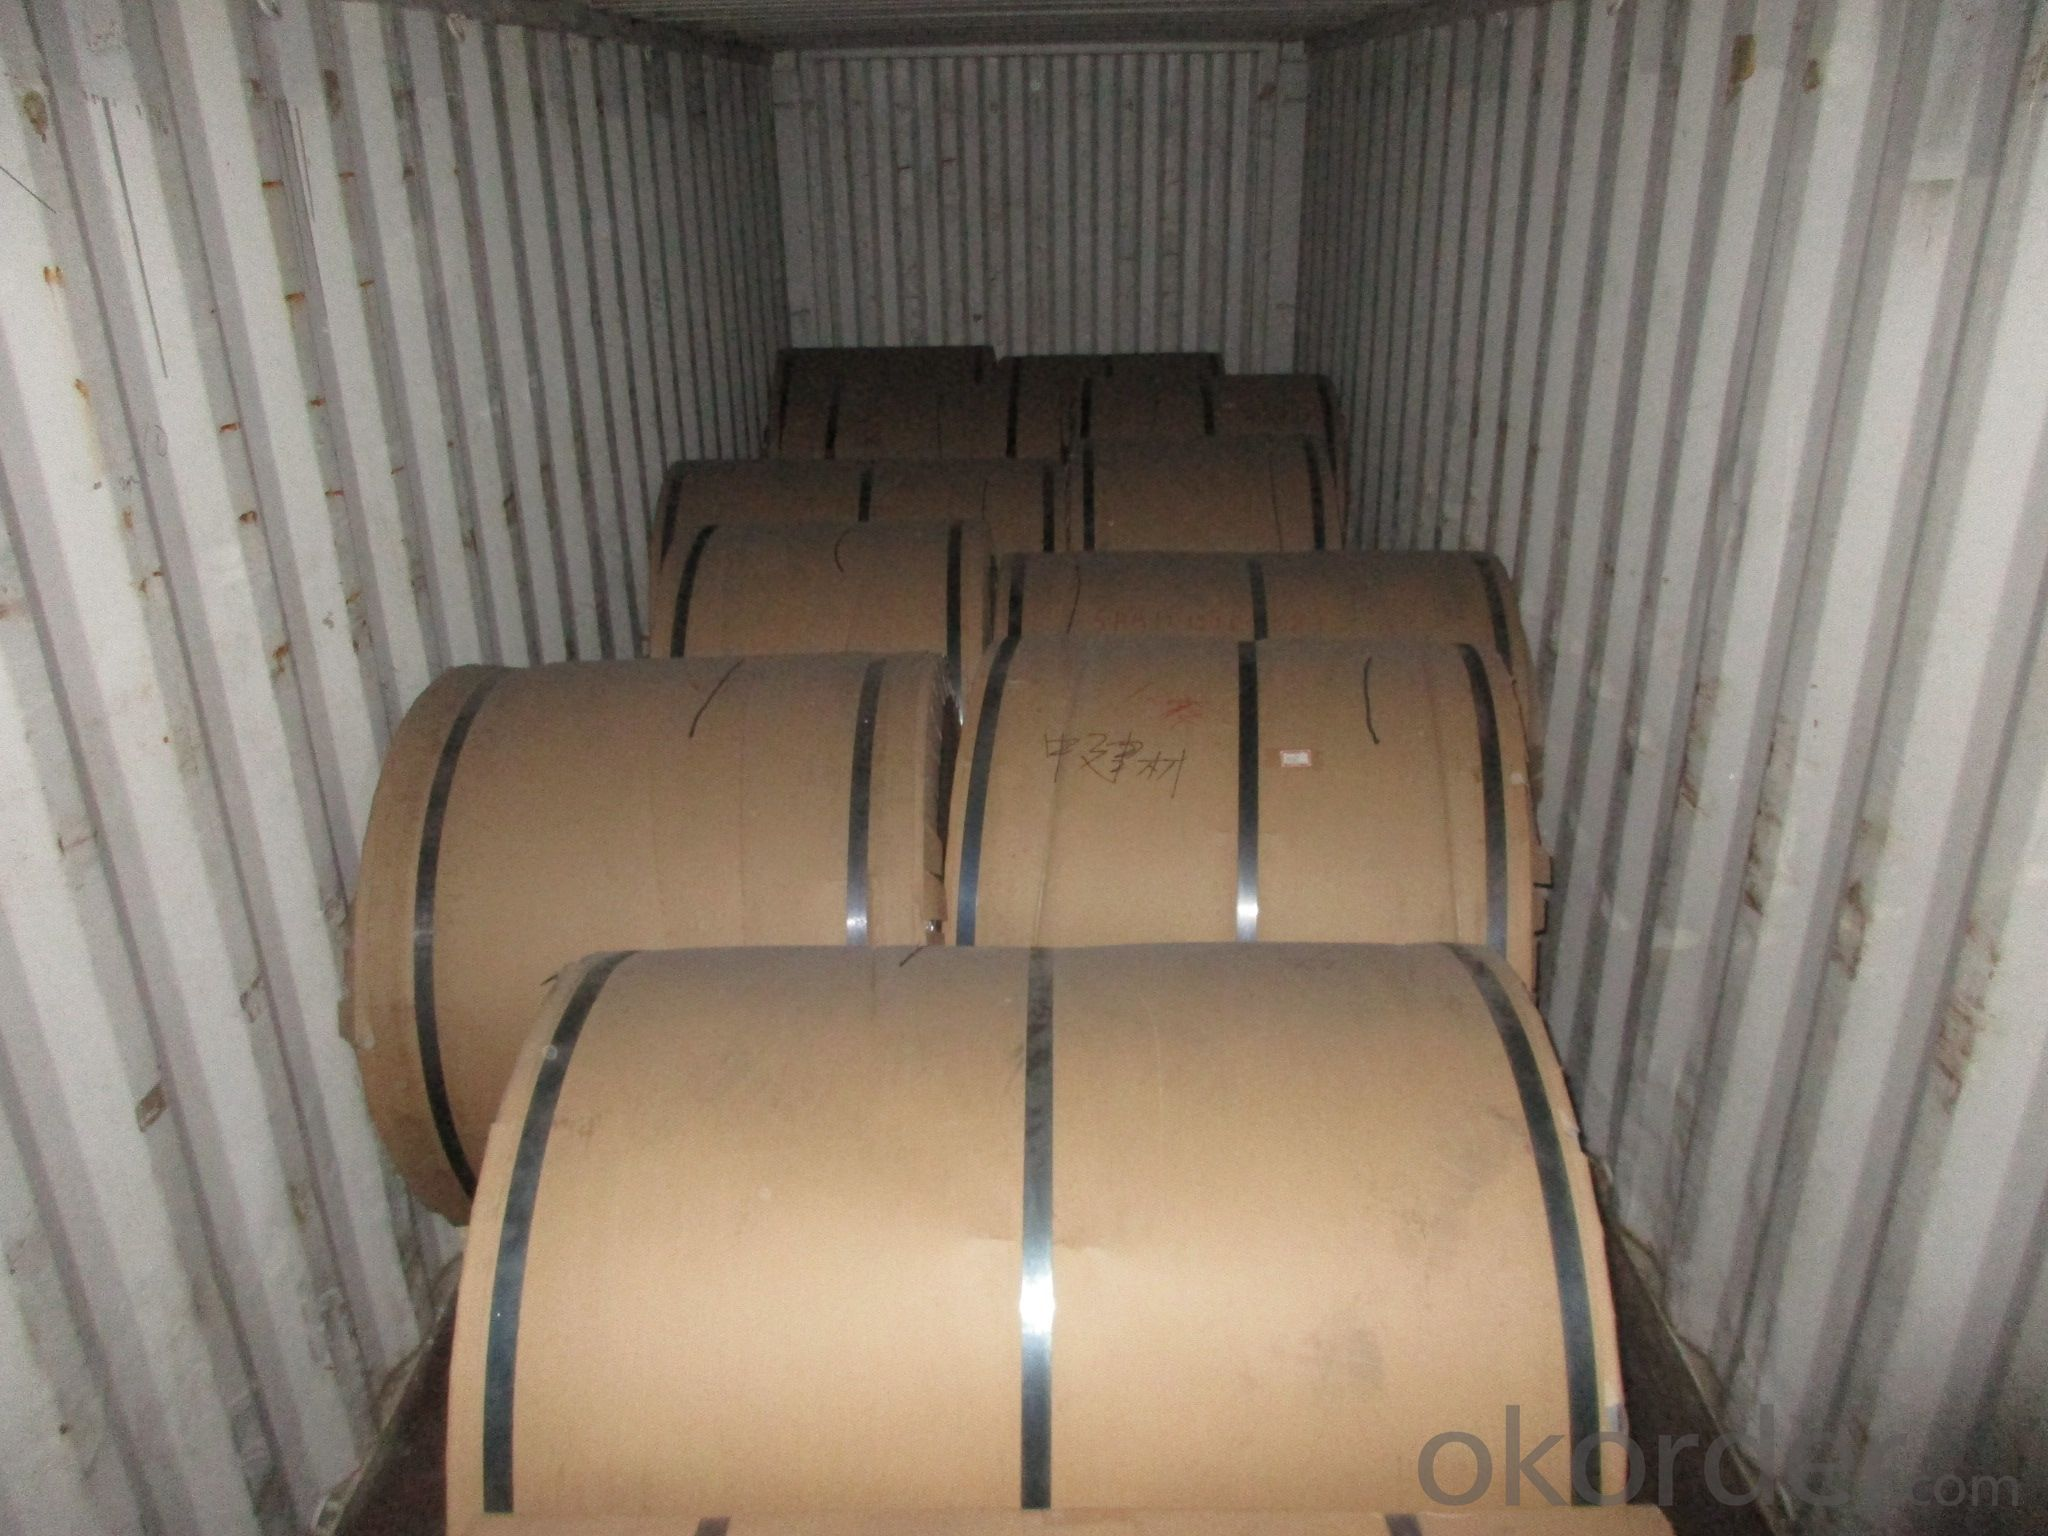 Stainless Steel Coil Rolled Hot Rolled With Best Price